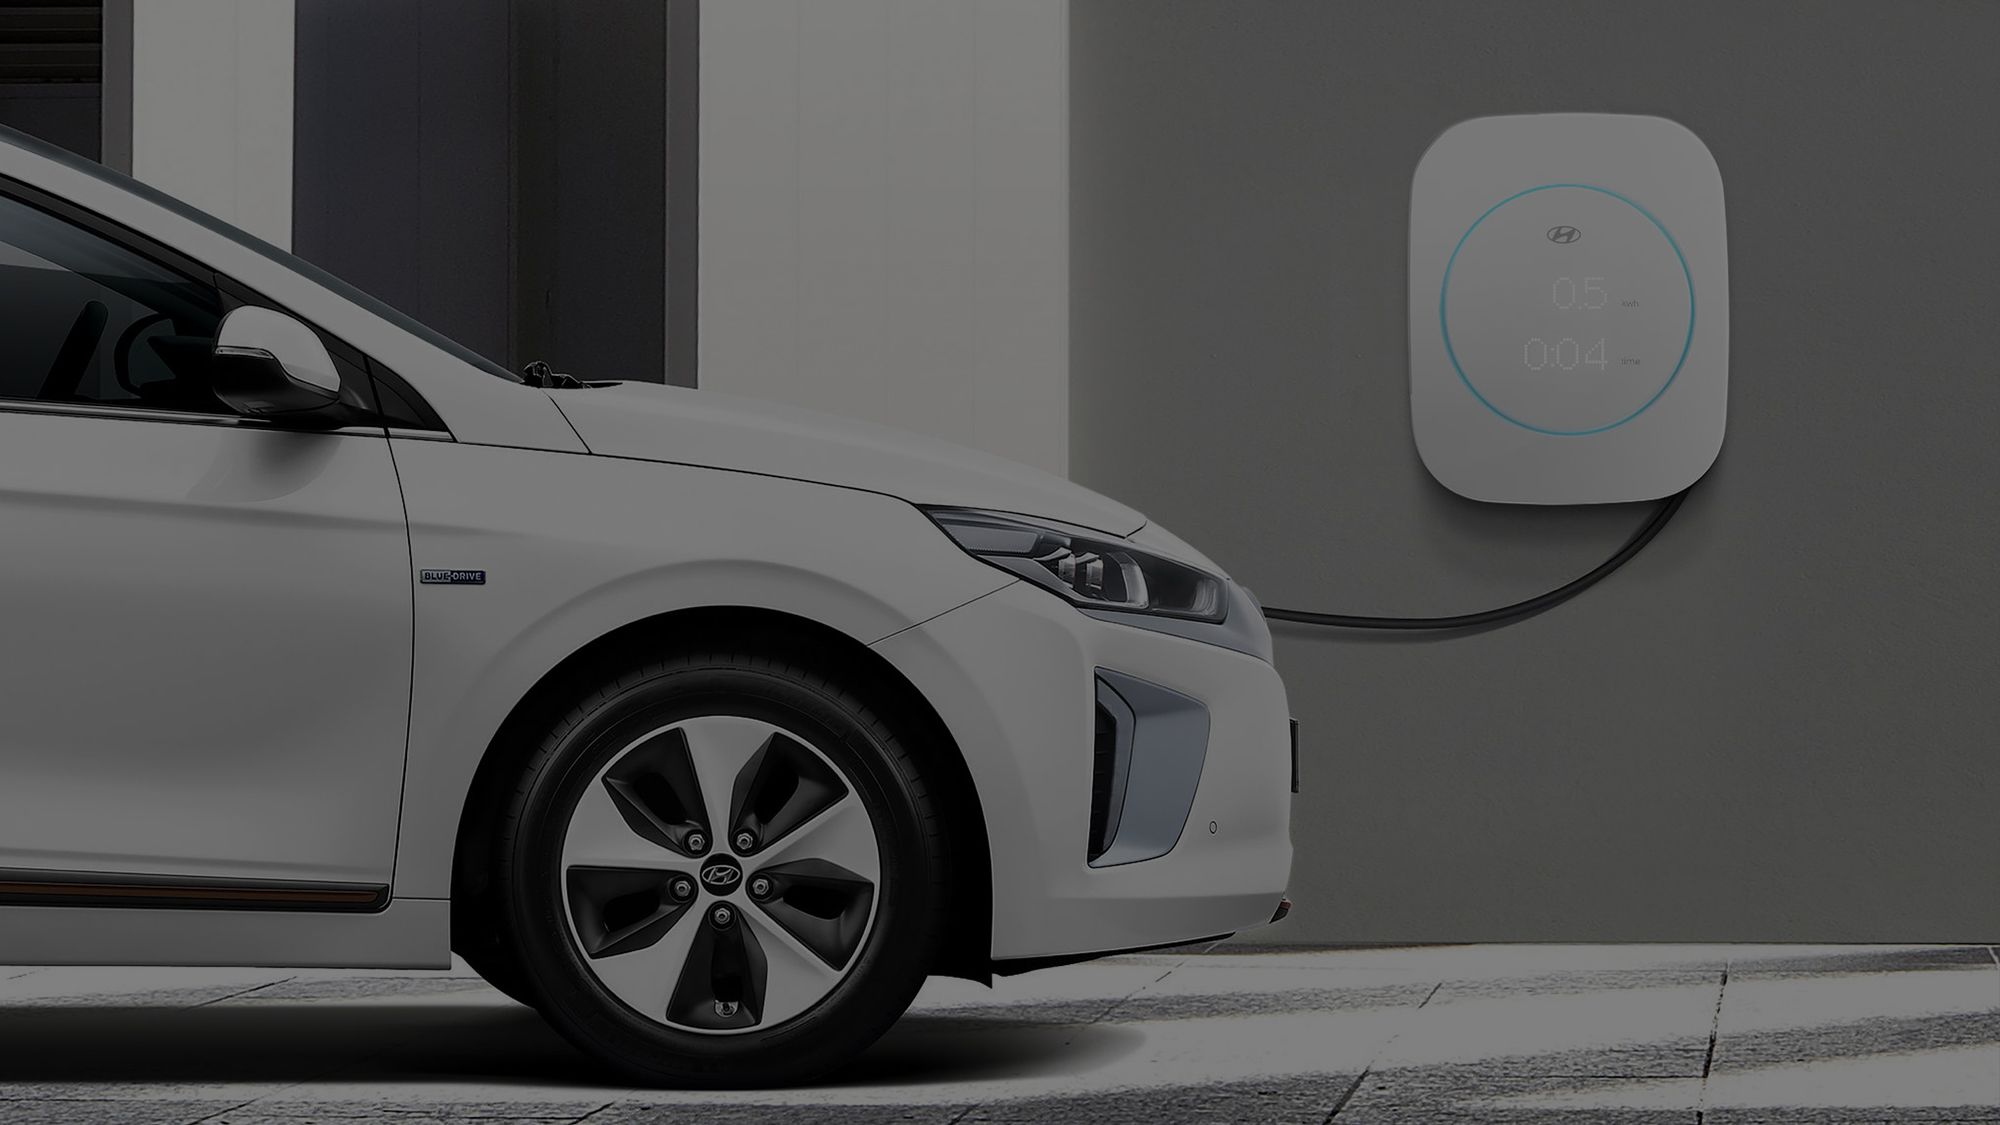 Hyundai white car getting charged on a Hyundai wall electric charger